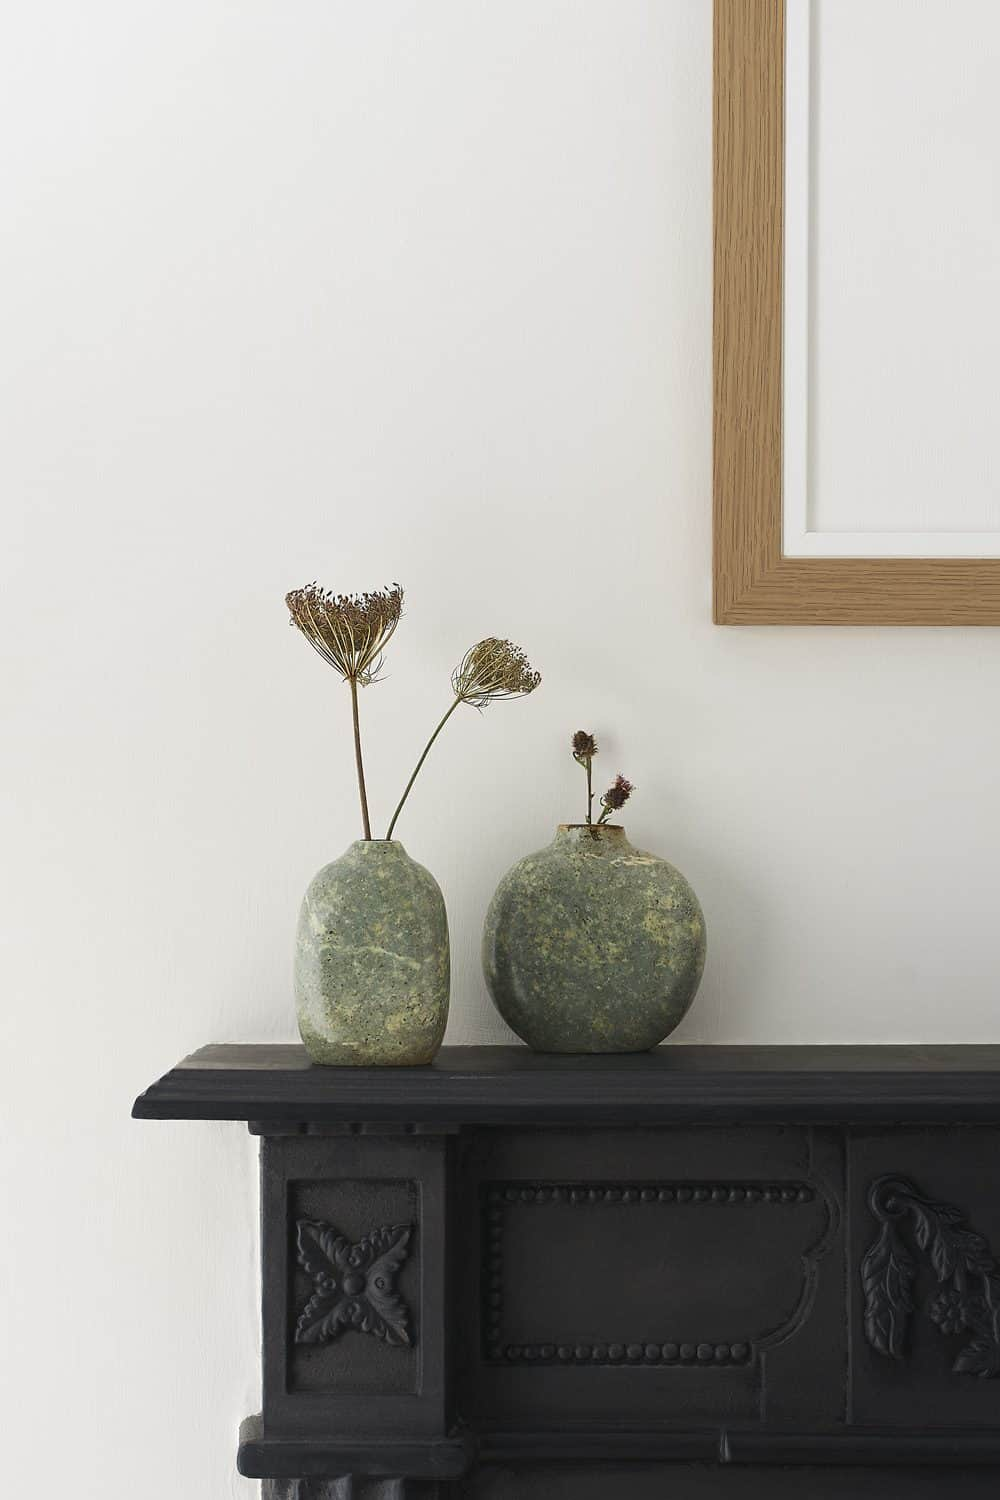 Hand sculpted vases created by Jennifer Tetlow photographed in lifestyle setting upon the studio fireplace